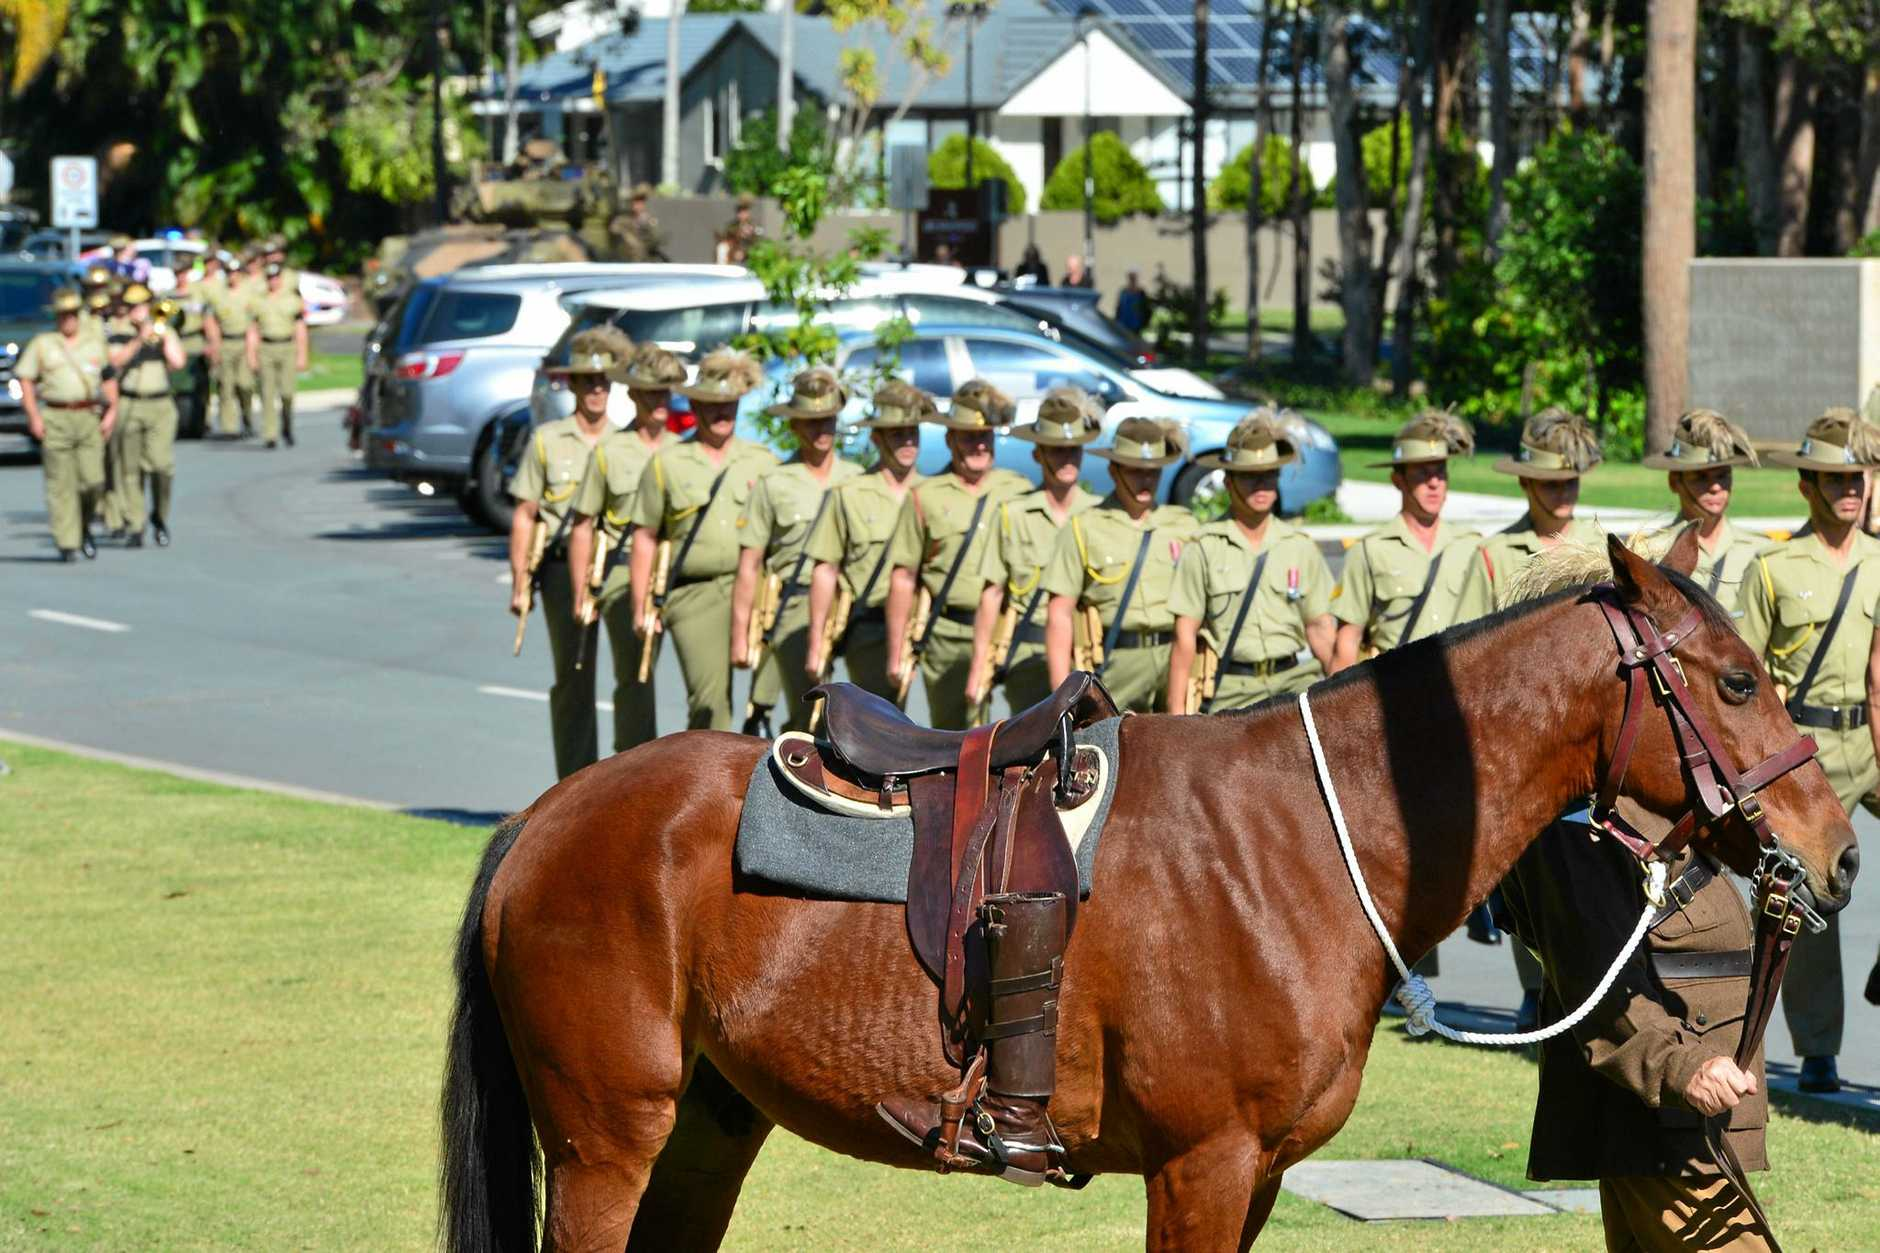 Trooper Stuart Reddan, 2/14 Light Horse Regiment (Queensland Mounted Infantry), tragically died during a training exercise at Shoalwater Bay on 4 May. He was farewelled with full military honours by family, friends and fellow soldiers at Gregson and weight, Maroochydore. The funeral procession was led by a riderless horse with stirrups reversed, which is a symbol of respect and mourning for fallen members of Light Horse units.